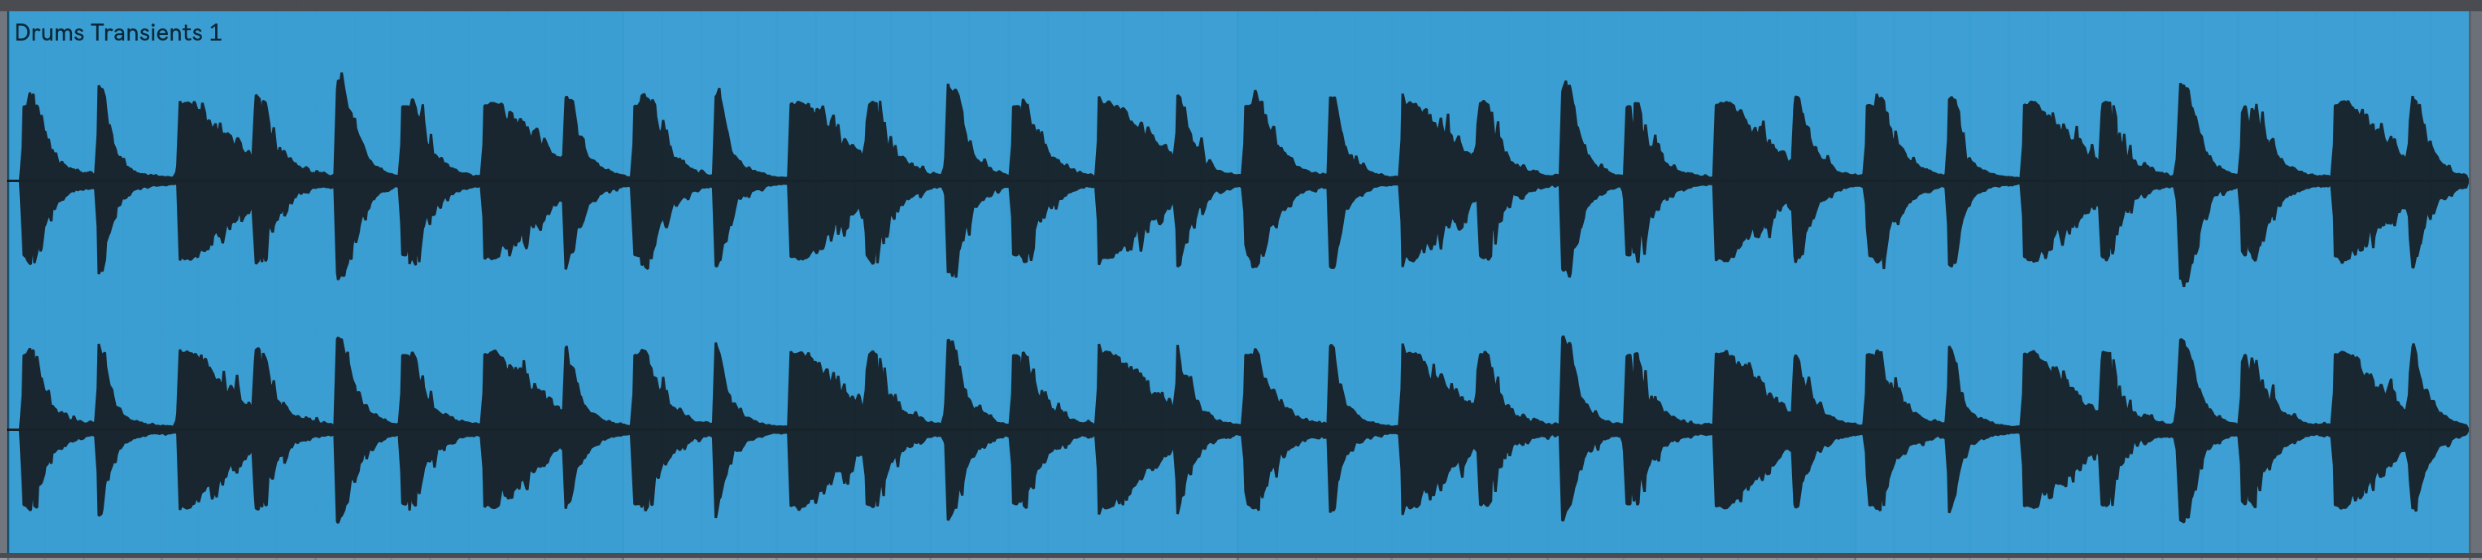 Our drum loop with Transients set to +1. Notice that each hit has more body and takes longer to decay.